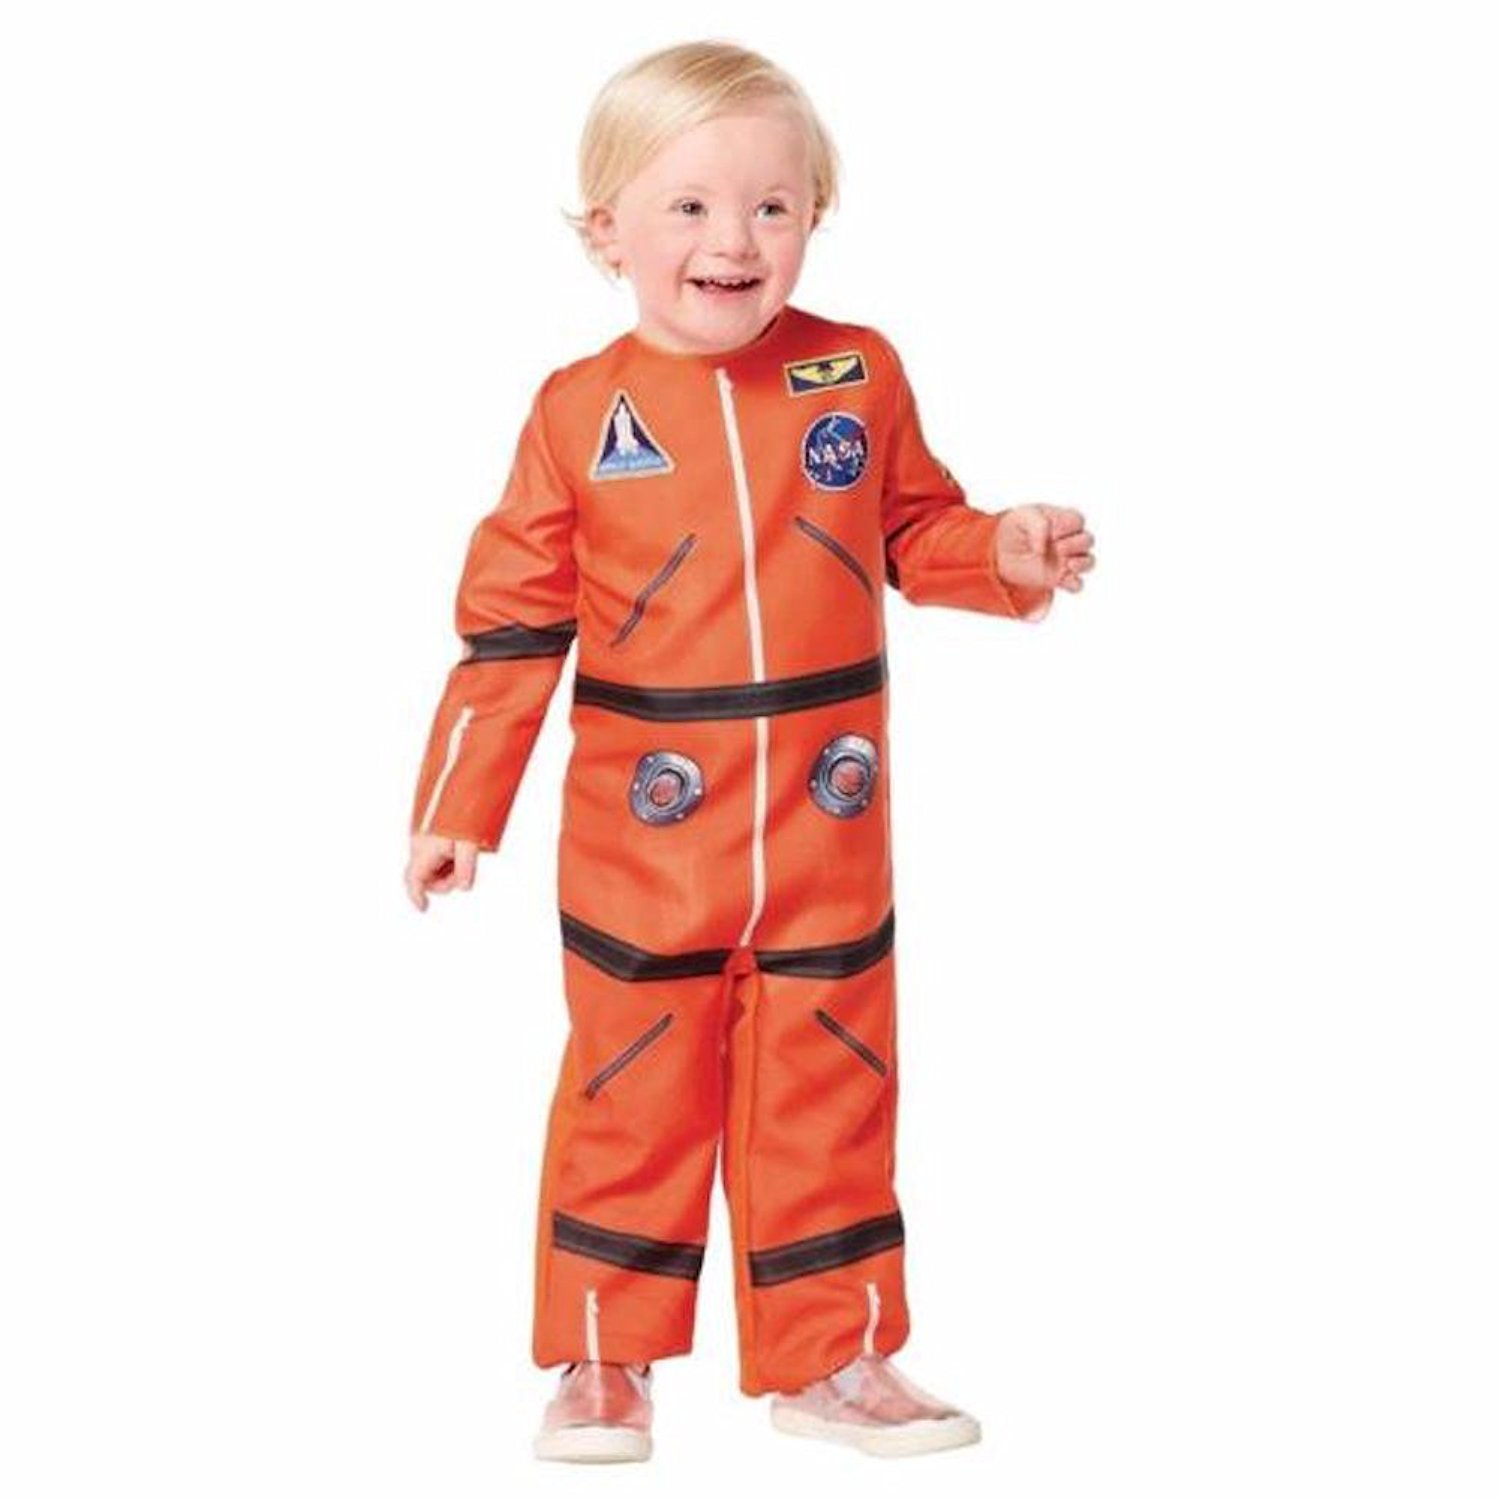 Toddler Boy's Astronaut Space Suit Nasa Child Costume (18-24 months), By Target Corporation